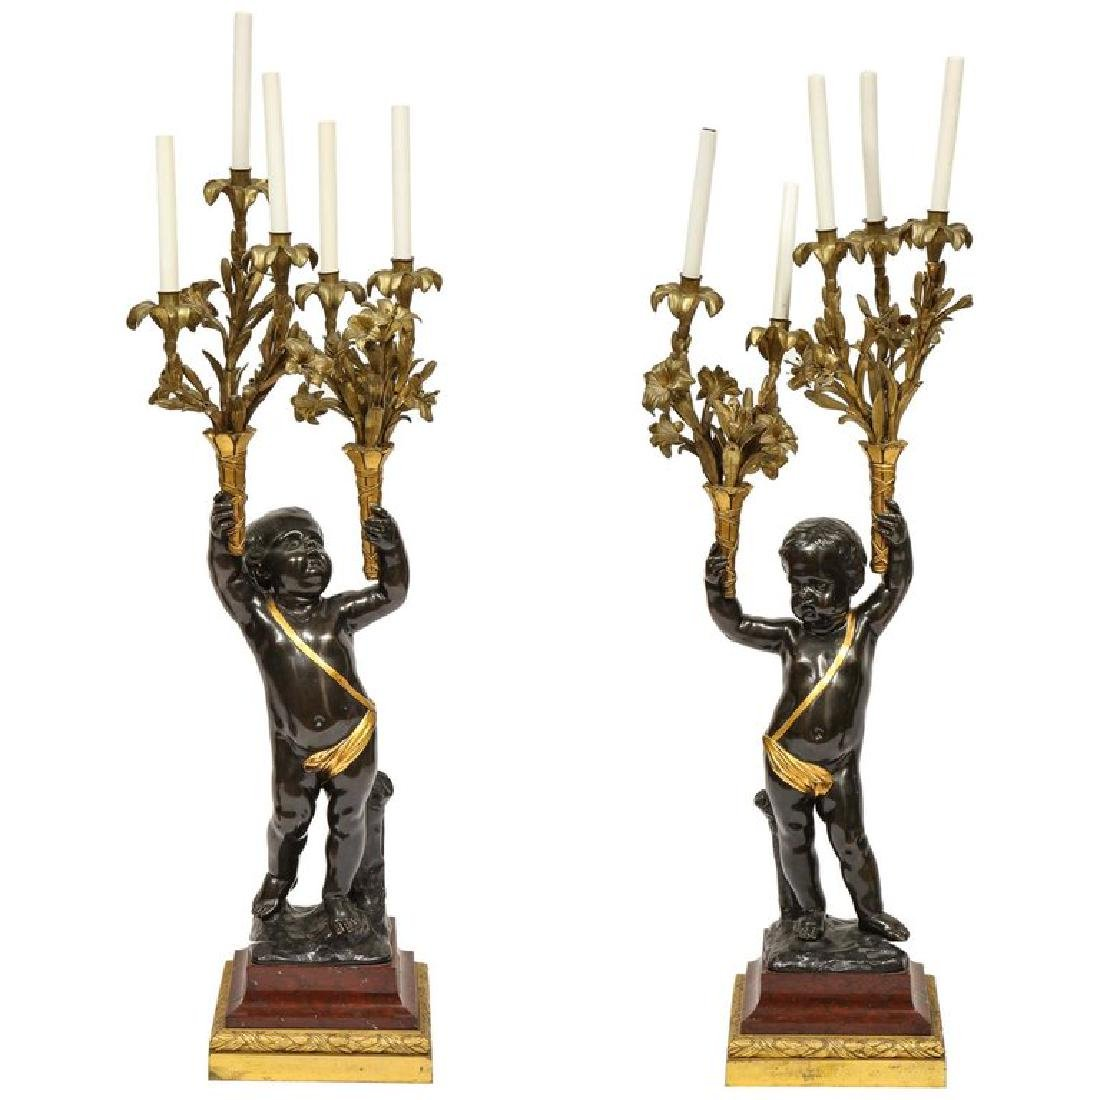 Monumental Pair of French Gilt and Patinated Bronze and